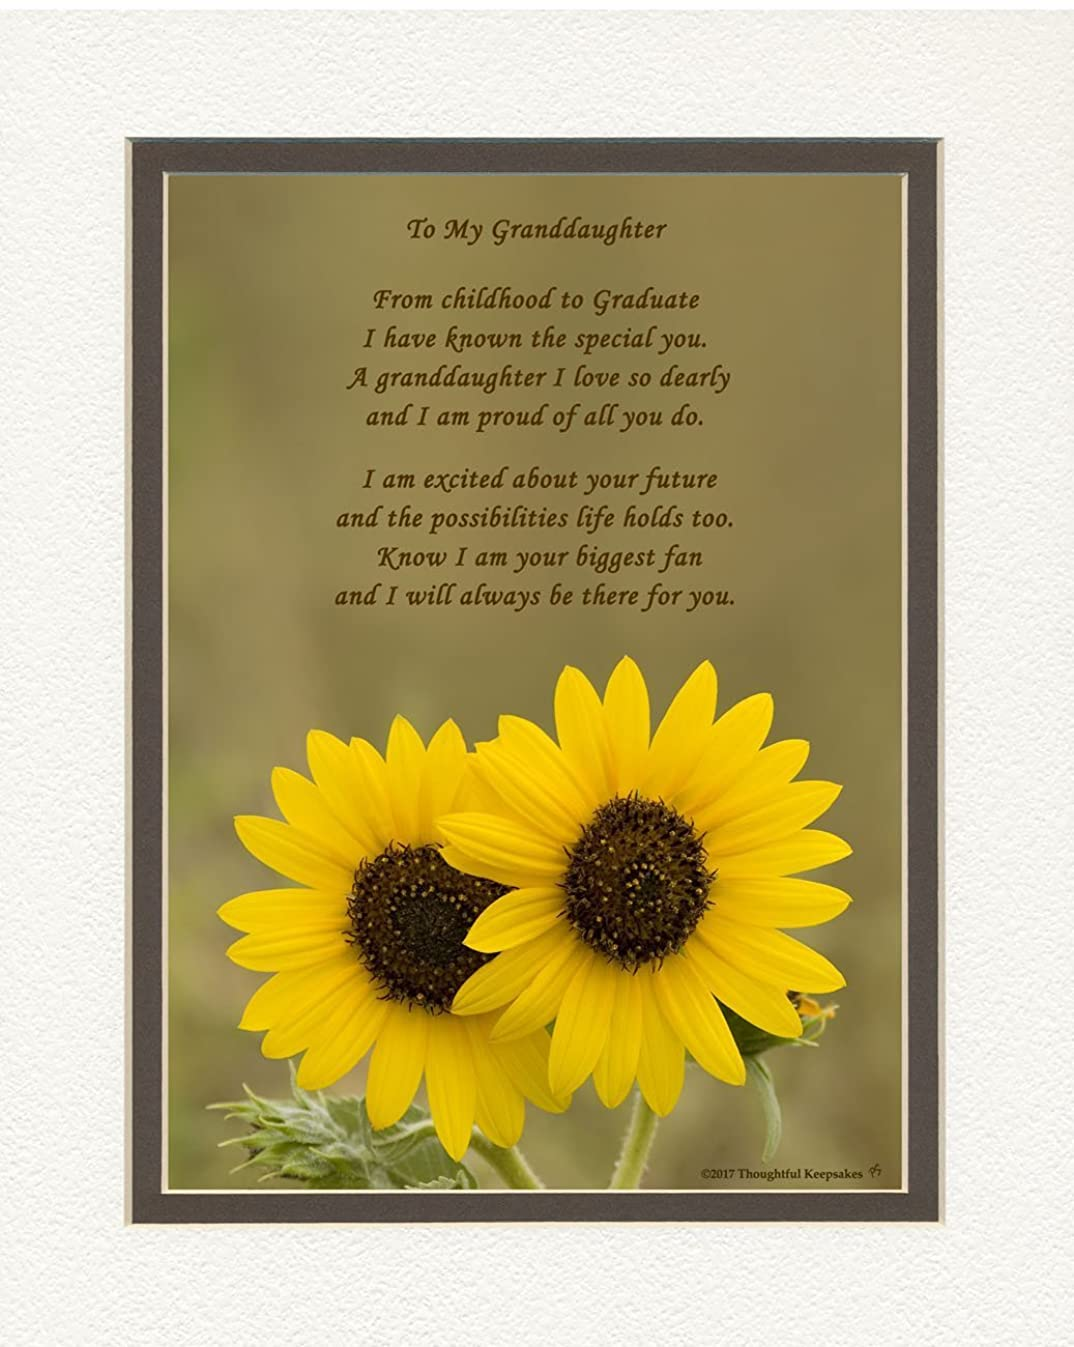 Granddaughter Graduation Gift, Sunflowers Photo with